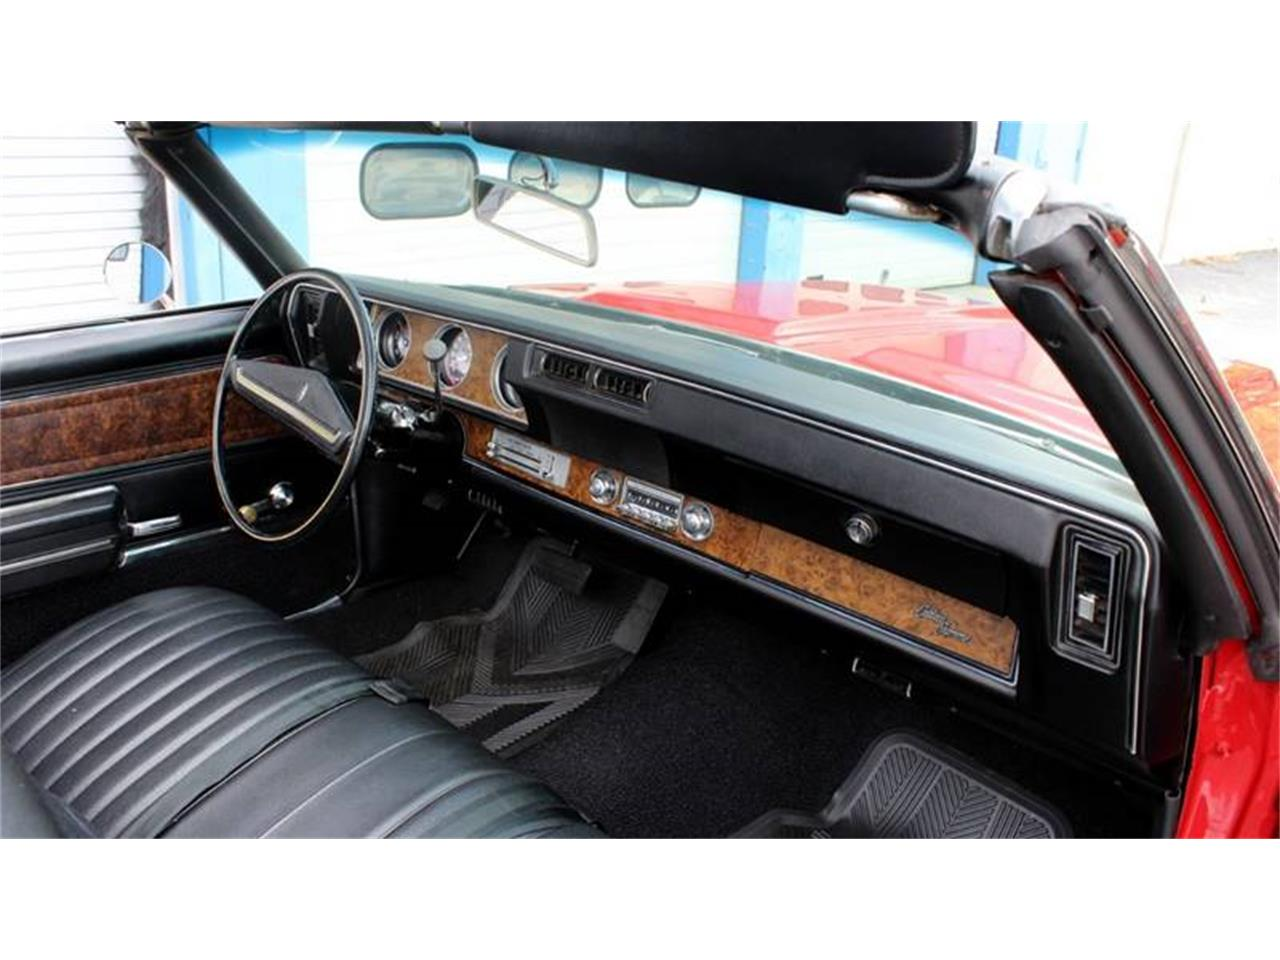 Large Picture of 1970 Cutlass Offered by PJ's Auto World - Q478